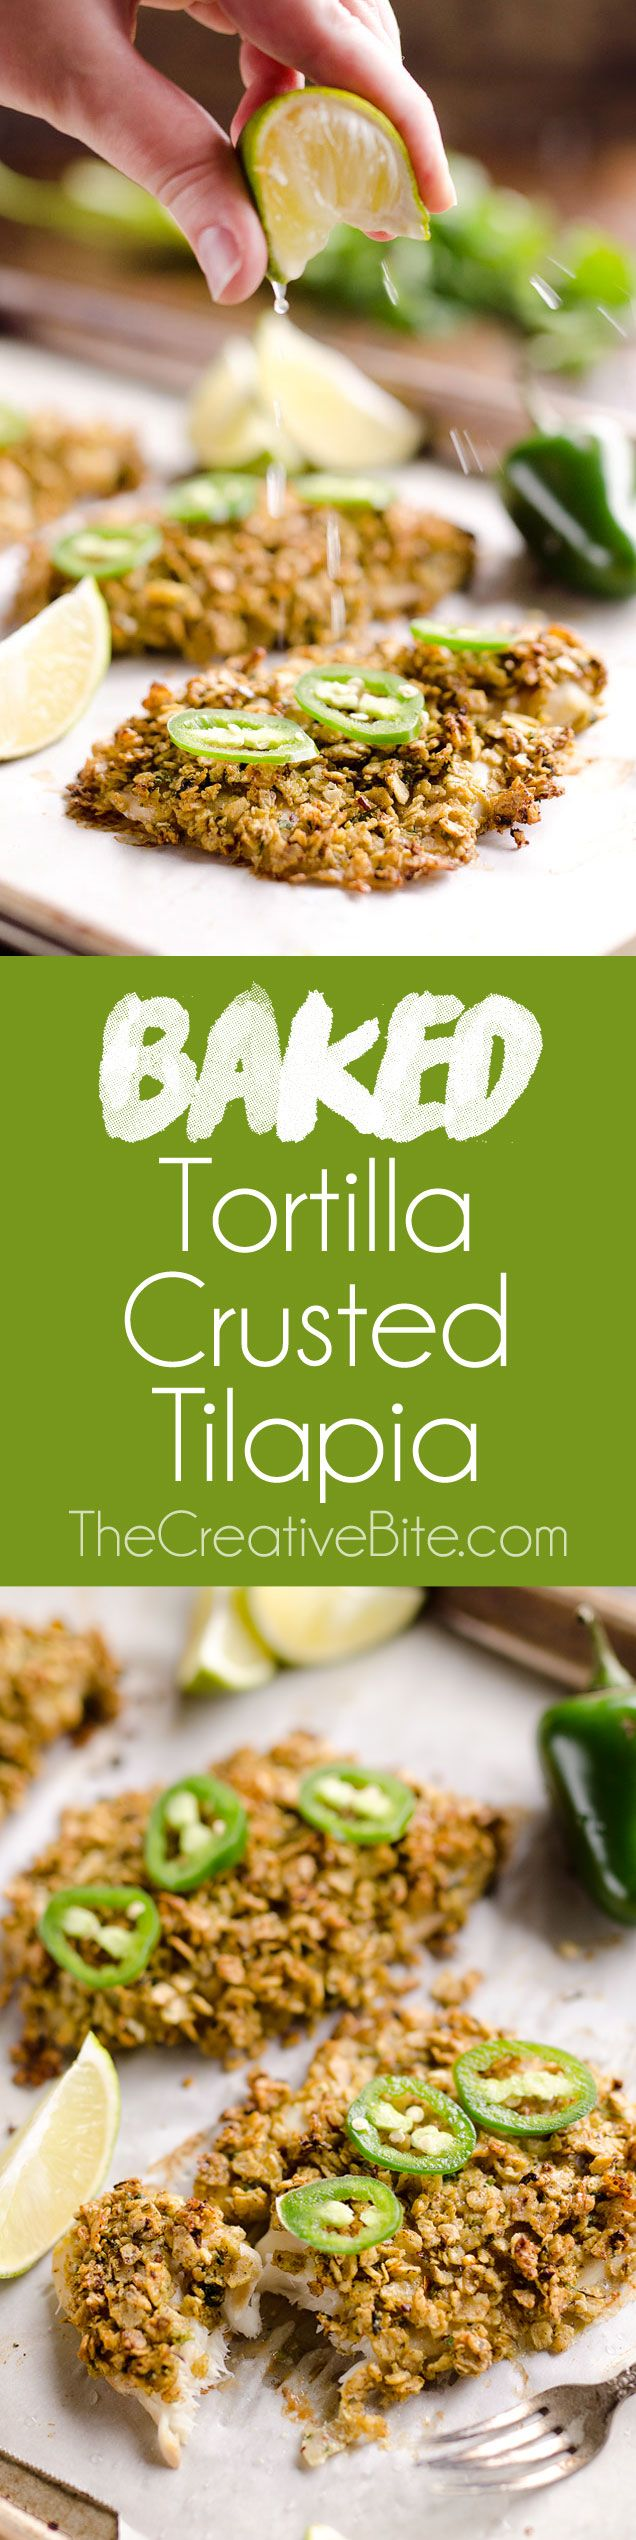 Baked Tortilla Crusted Tilapia is a light and healthy dinner idea with a crunchy tortilla crust full of spicy southwestern flavors that is ready in less than 30 minutes!#Fish #Healthy #Dinner